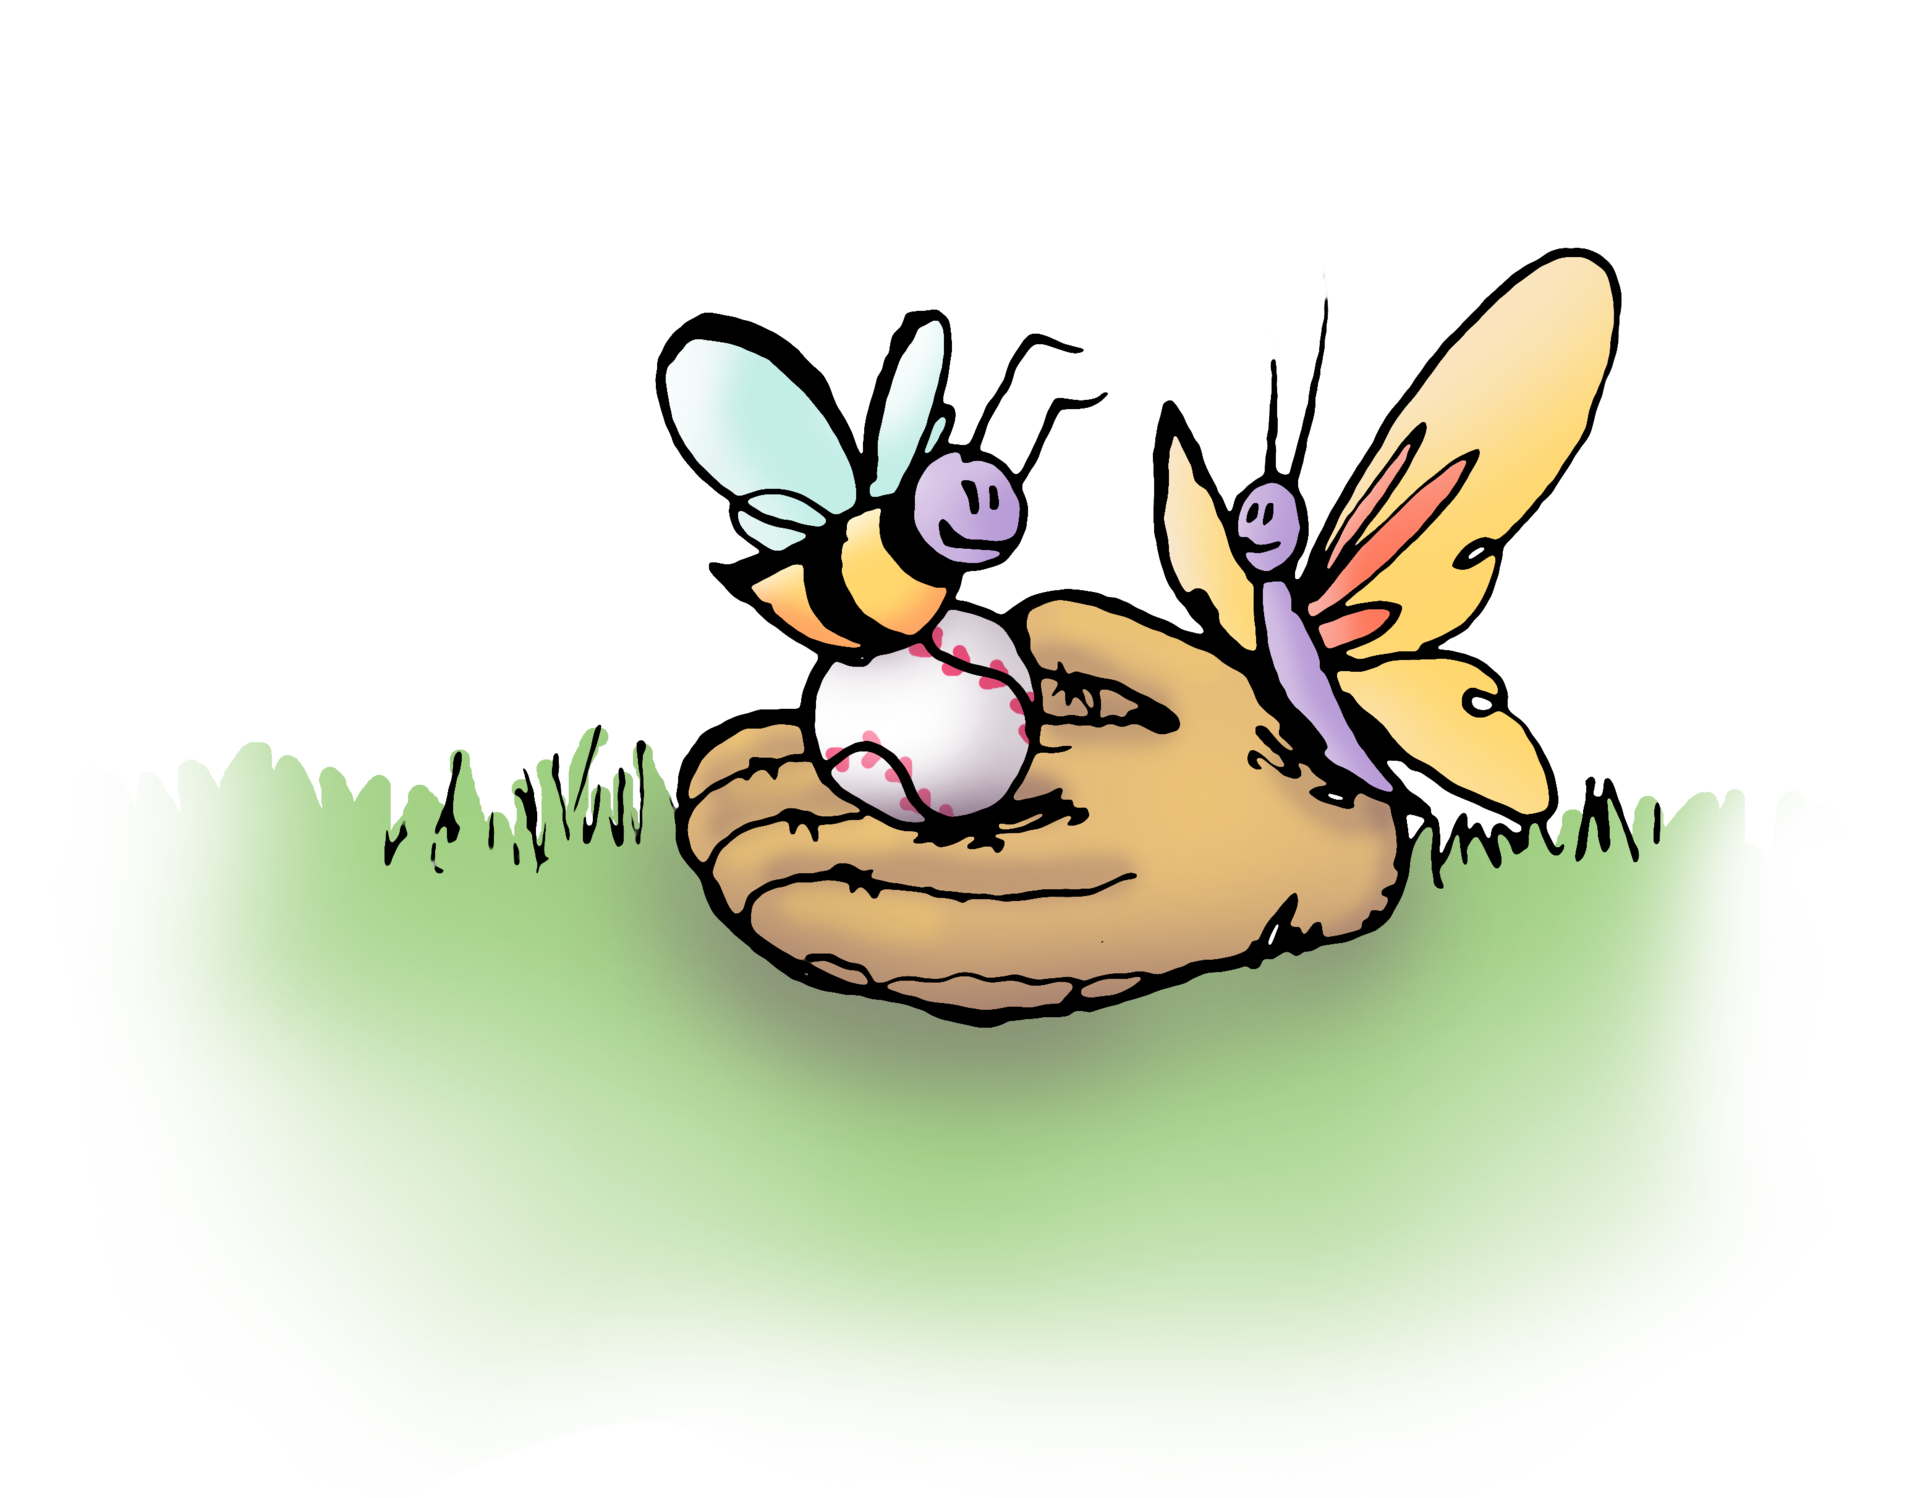 A Mr. See original illustration of a bee and a butterfly perched on a baseball glove in the grass